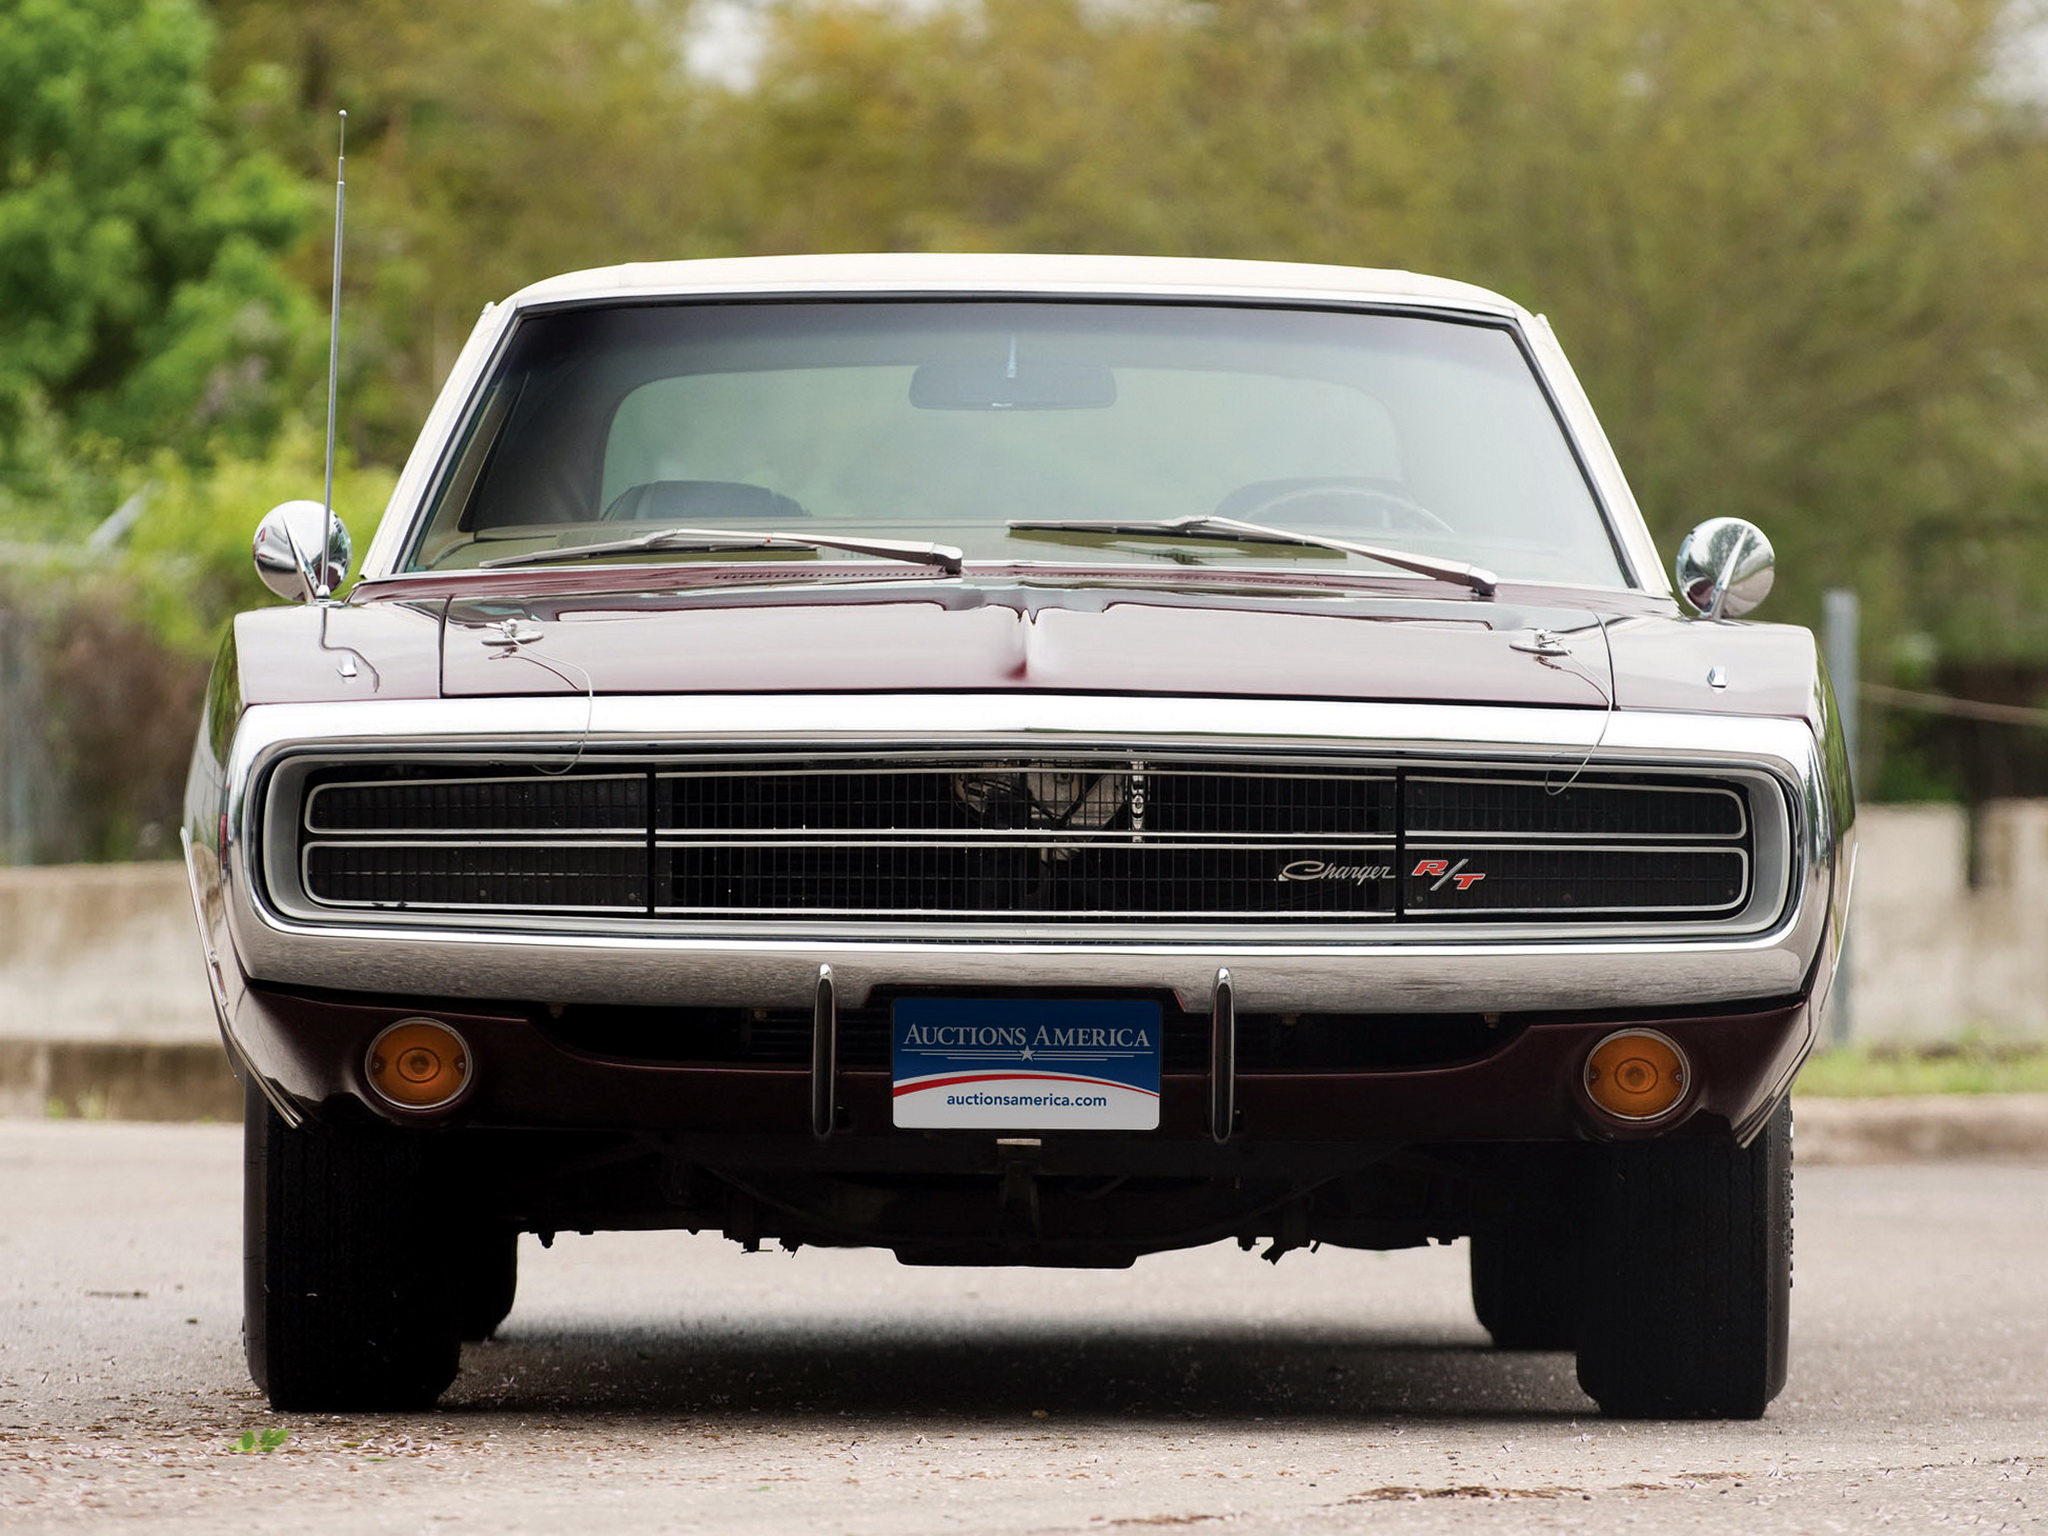 1970 Dodge Charger R T S E classic muscle f wallpaper 2048x1536 2048x1536